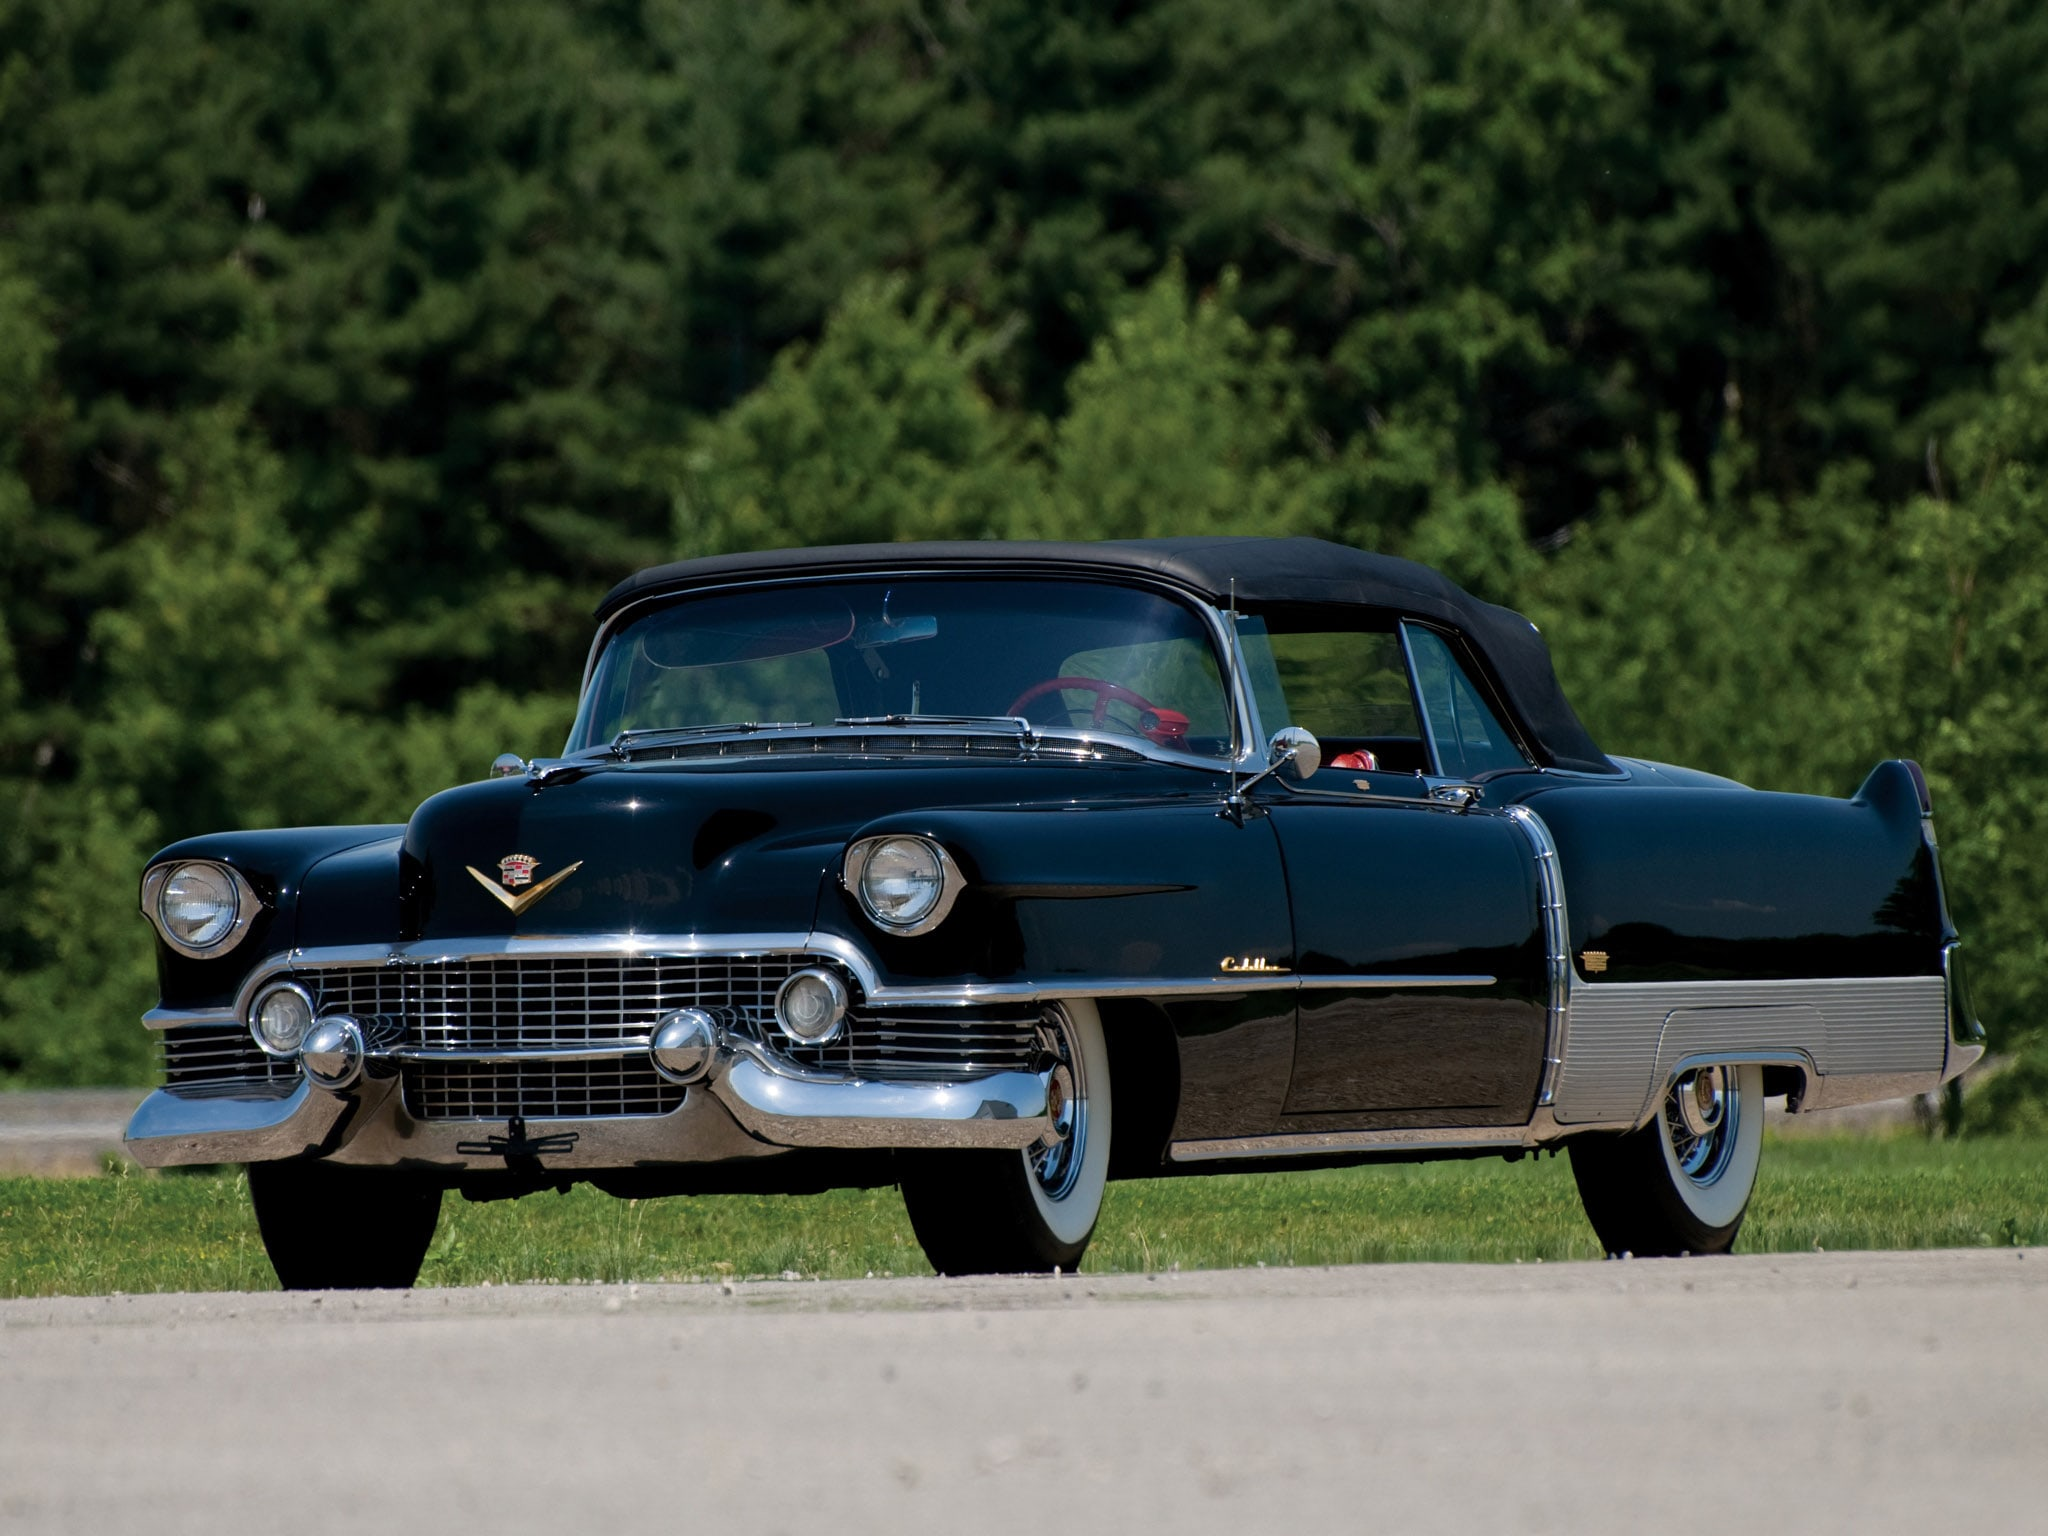 1954 Cadillac Eldorado Hd Desktop Wallpapers Sedan Deville Widescreen Pictures